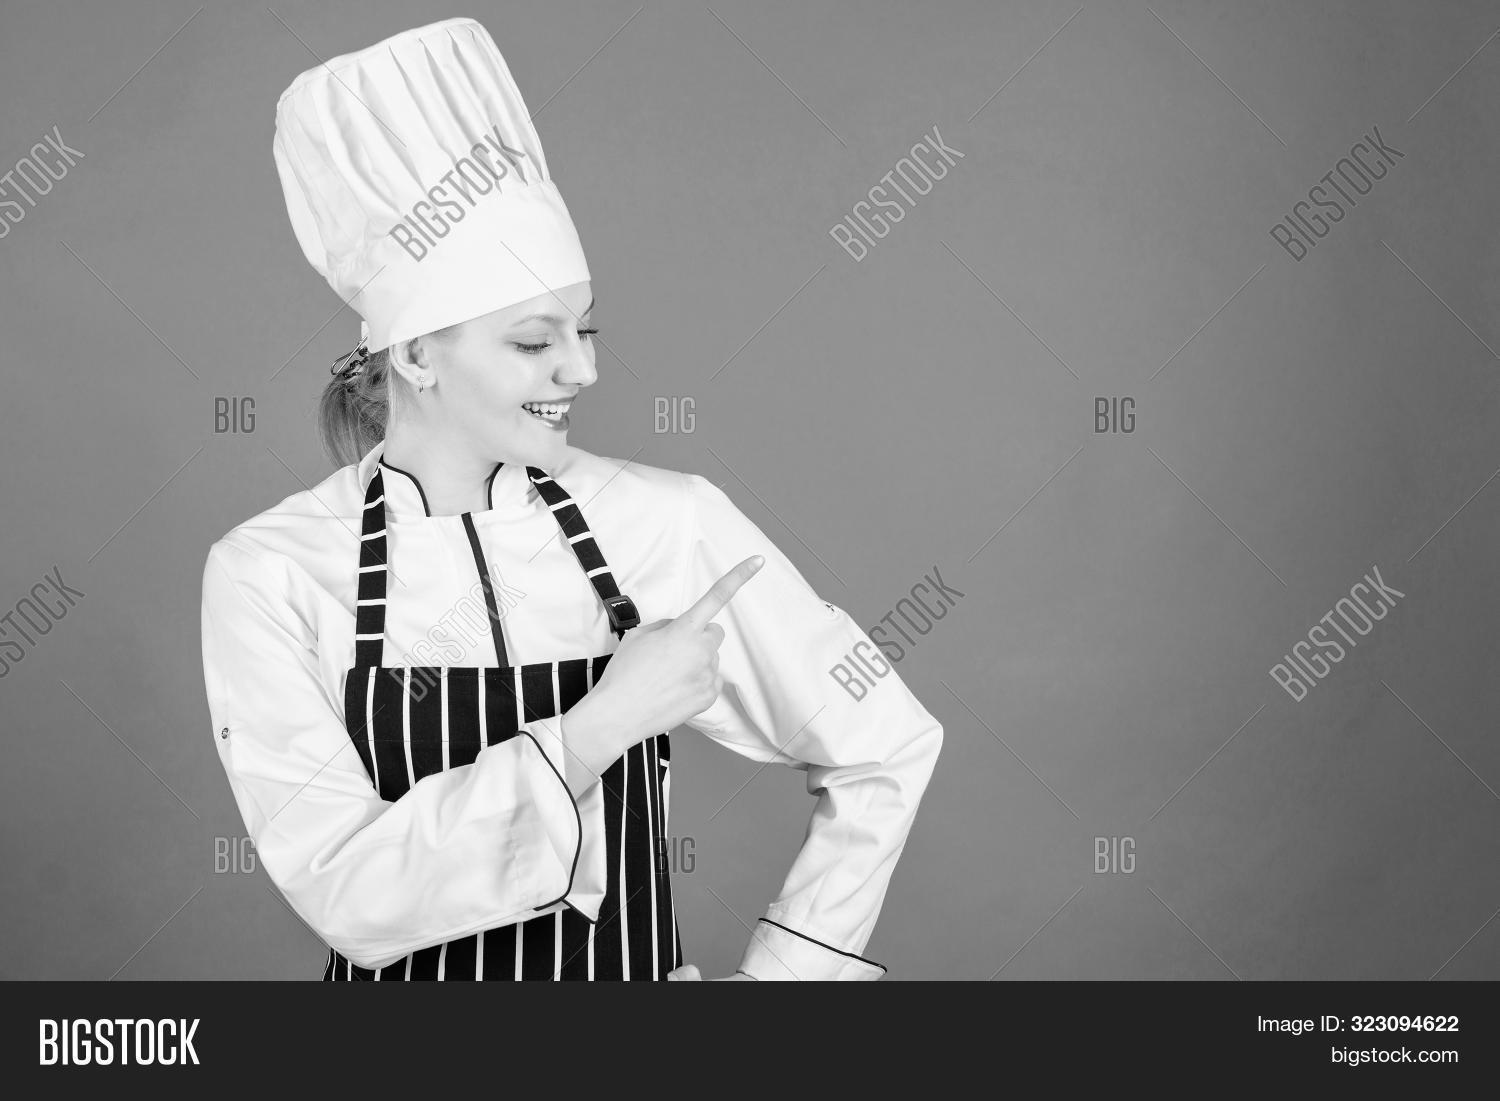 advertising,bakery,bar,breakfast,business,cafe,cafeteria,card,cart,carte,choice,cook,cooking,cuisine,culinary,delicatessen,design,diner,dining,dinner,dish,dishes,drink,eat,eatery,eating,food,girl,kitchen,list,lunch,meal,menu,order,plate,price,pub,restaurant,serve,service,serving,snack,specials,supper,table,tasty,woman